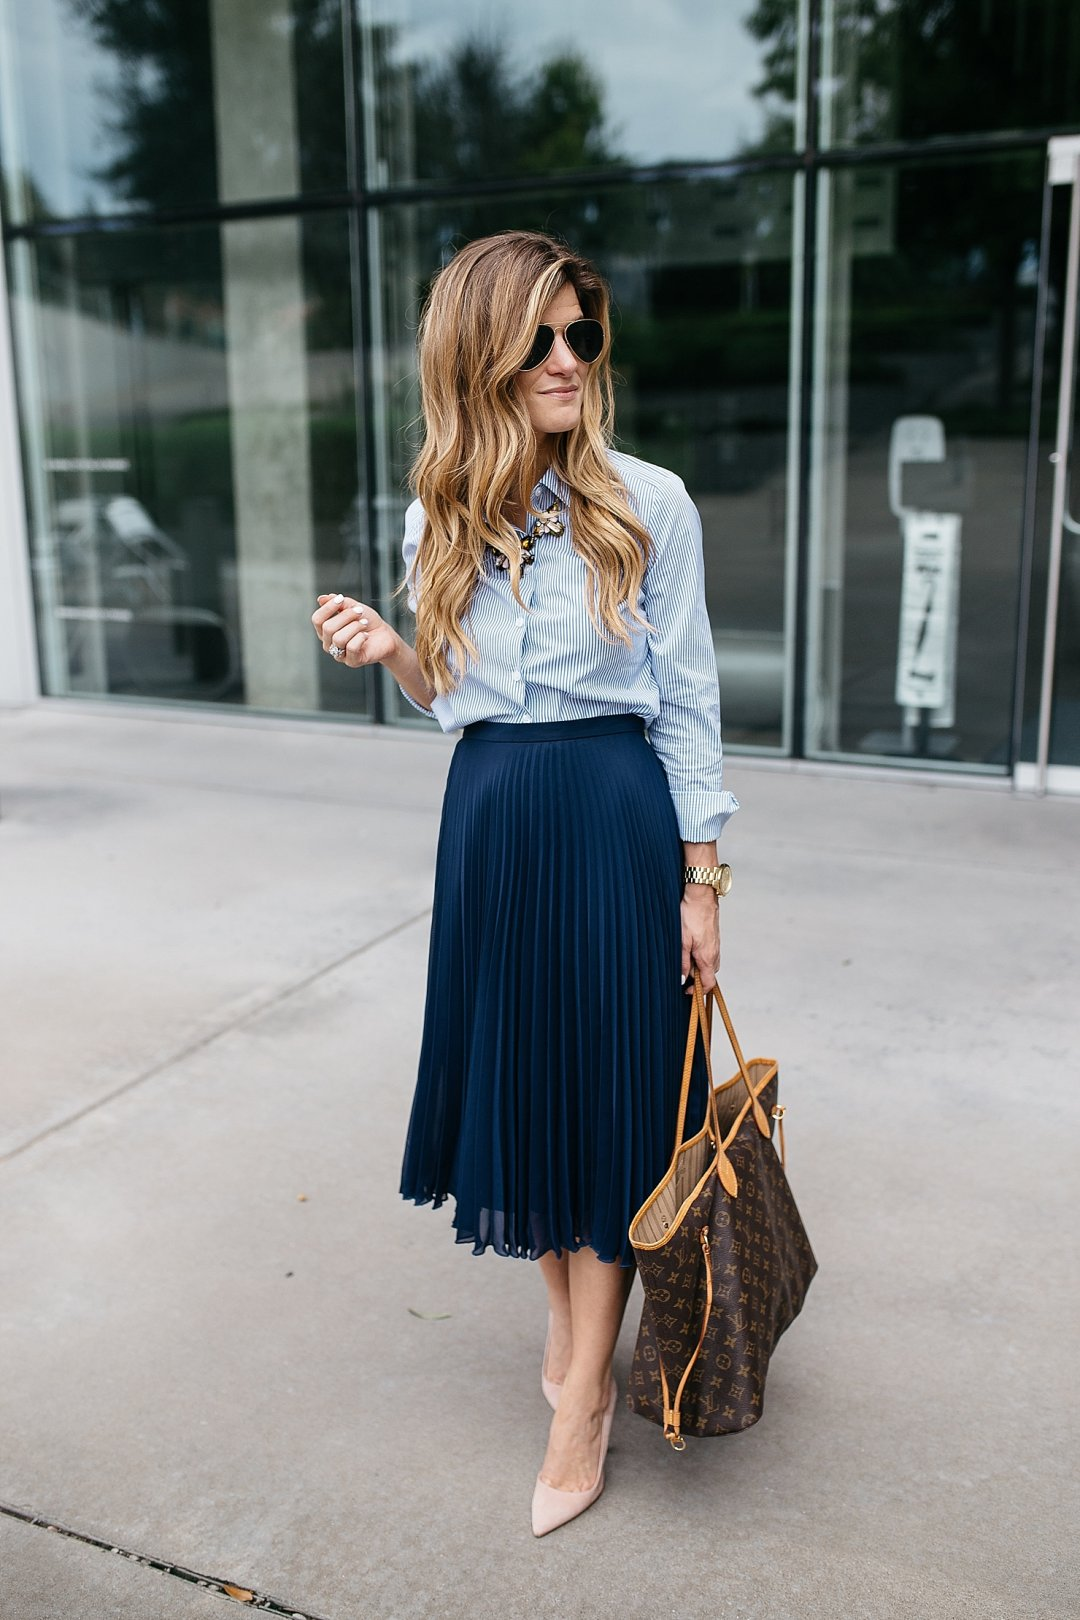 business casual outfit, business professional outfit idea, pleated midi skirt, navy and blush outfit, statement necklace